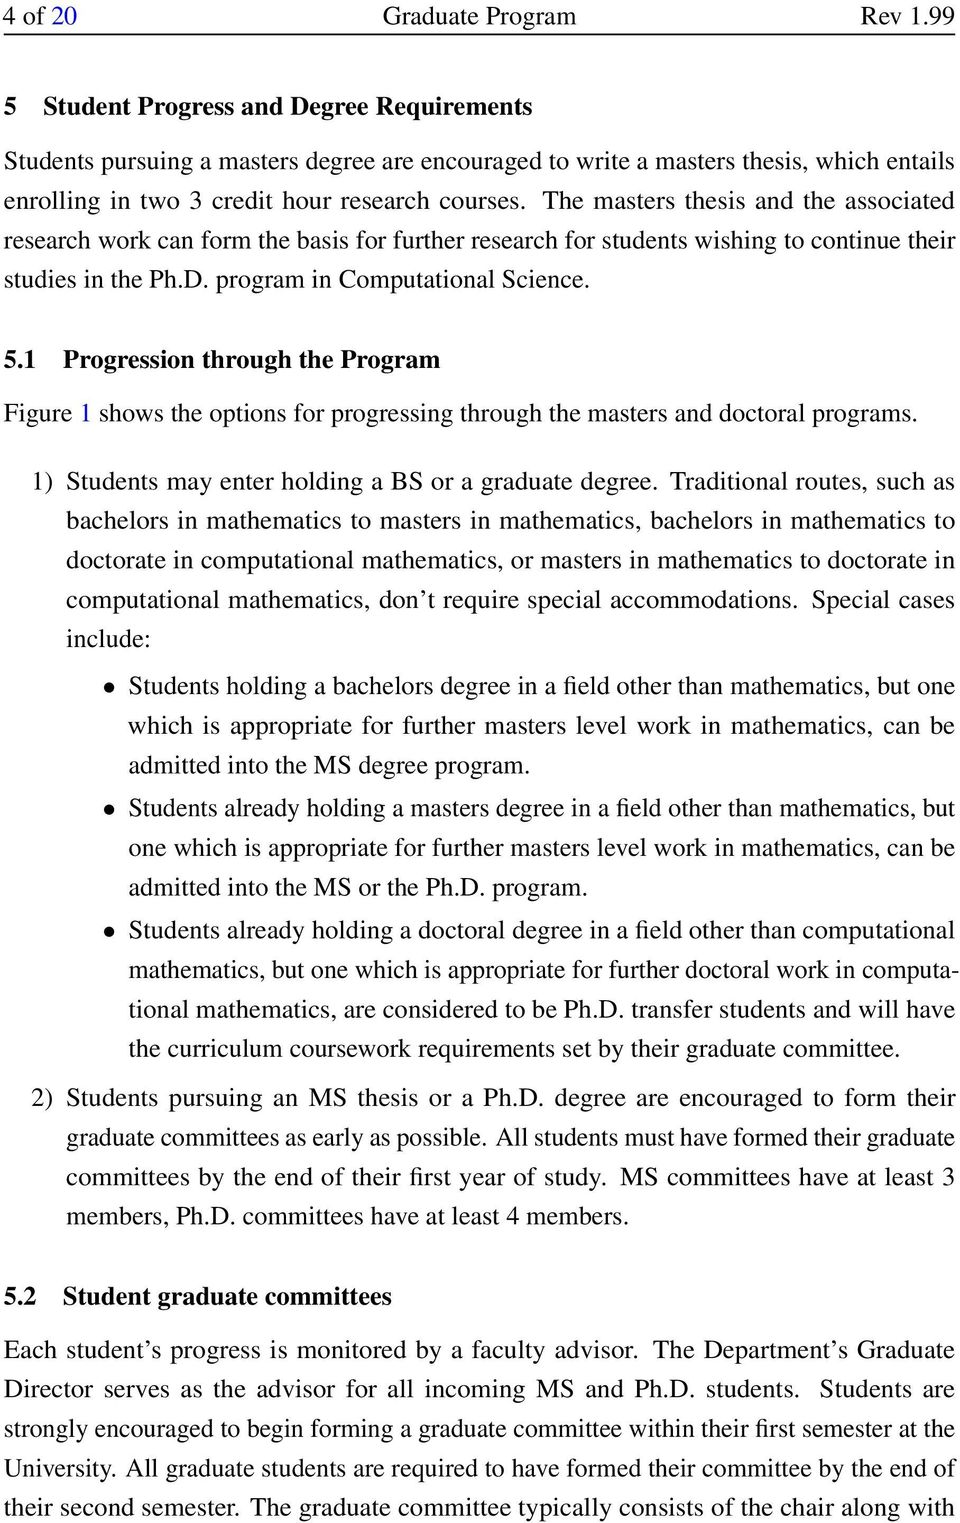 The masters thesis and the associated research work can form the basis for further research for students wishing to continue their studies in the Ph.D. program in Computational Science. 5.